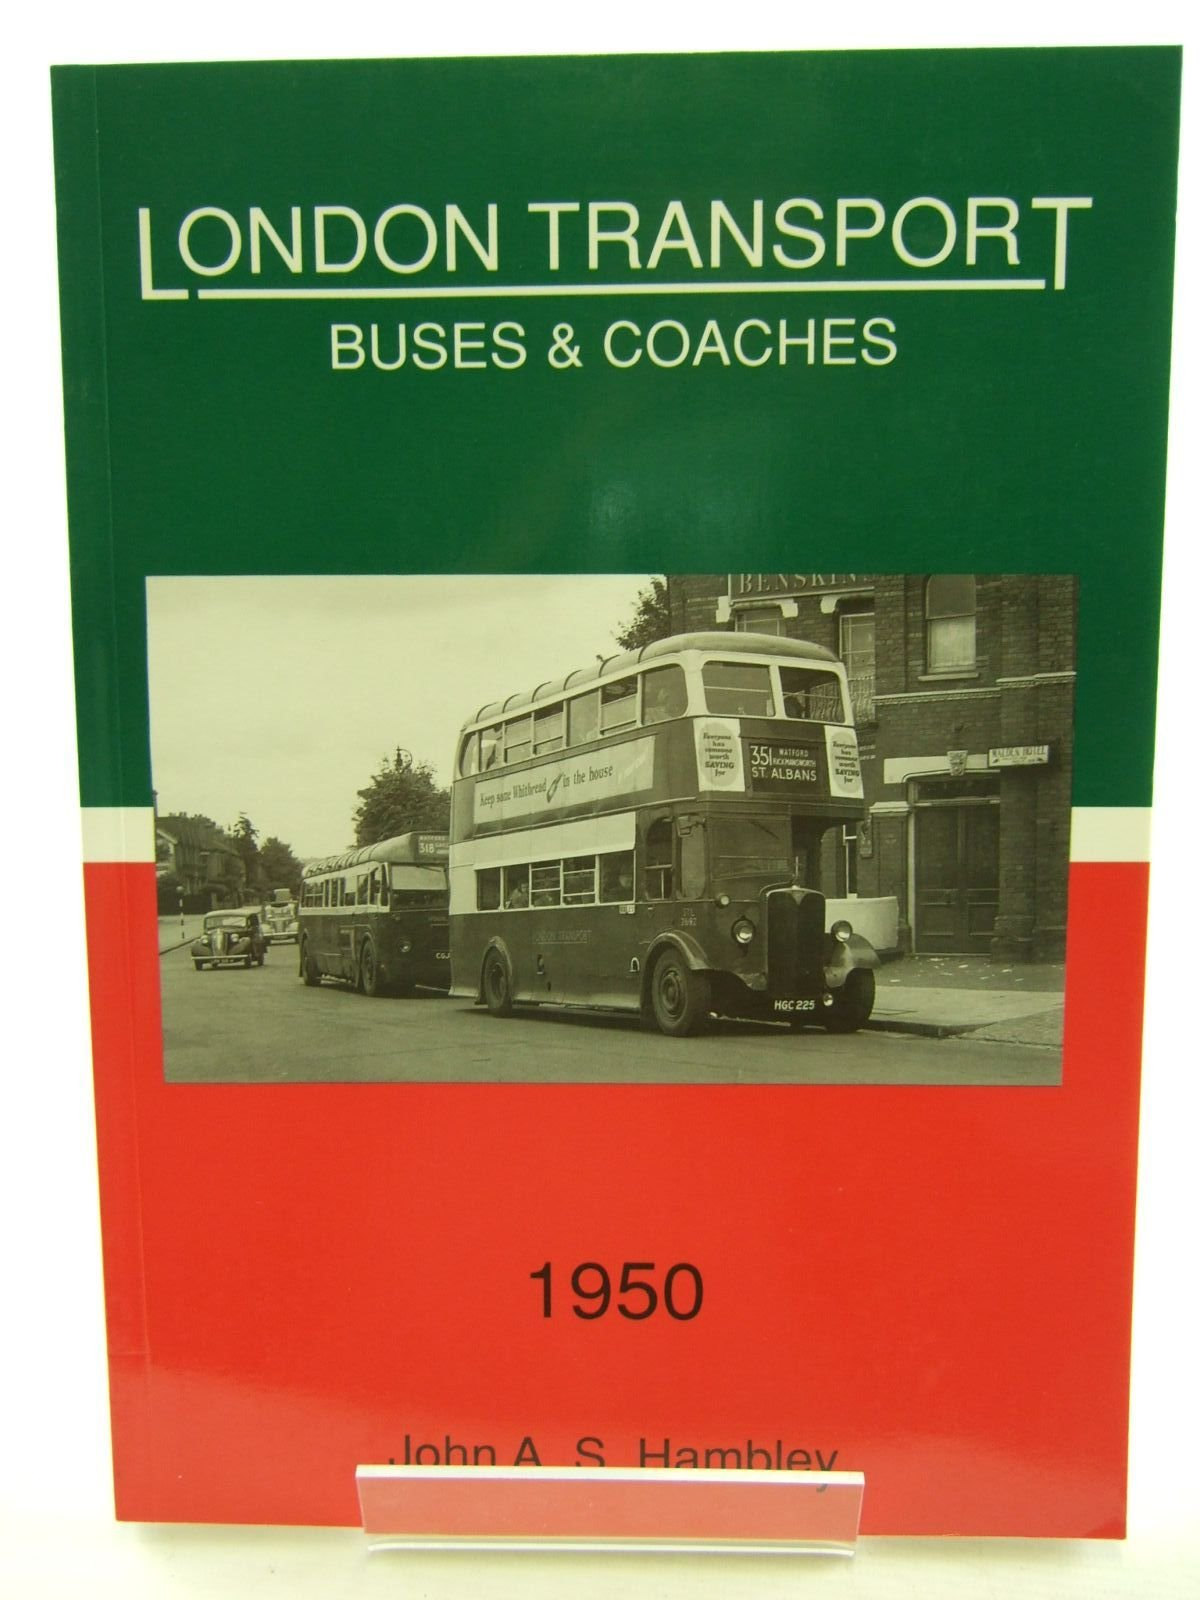 London Transport Buses and Coaches 1950 (London Transport buses & coaches)